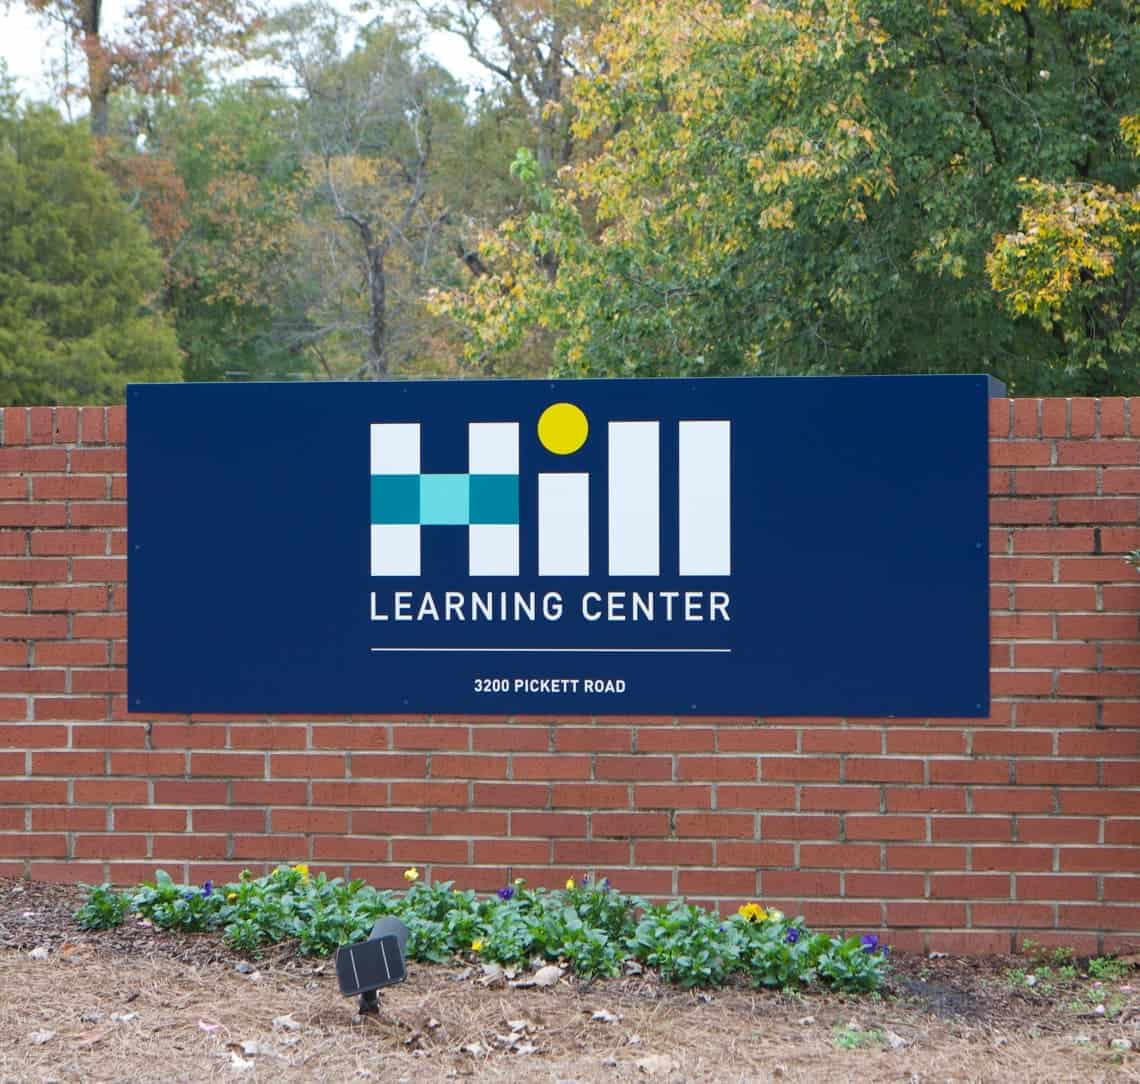 Hill Learning Center building sign